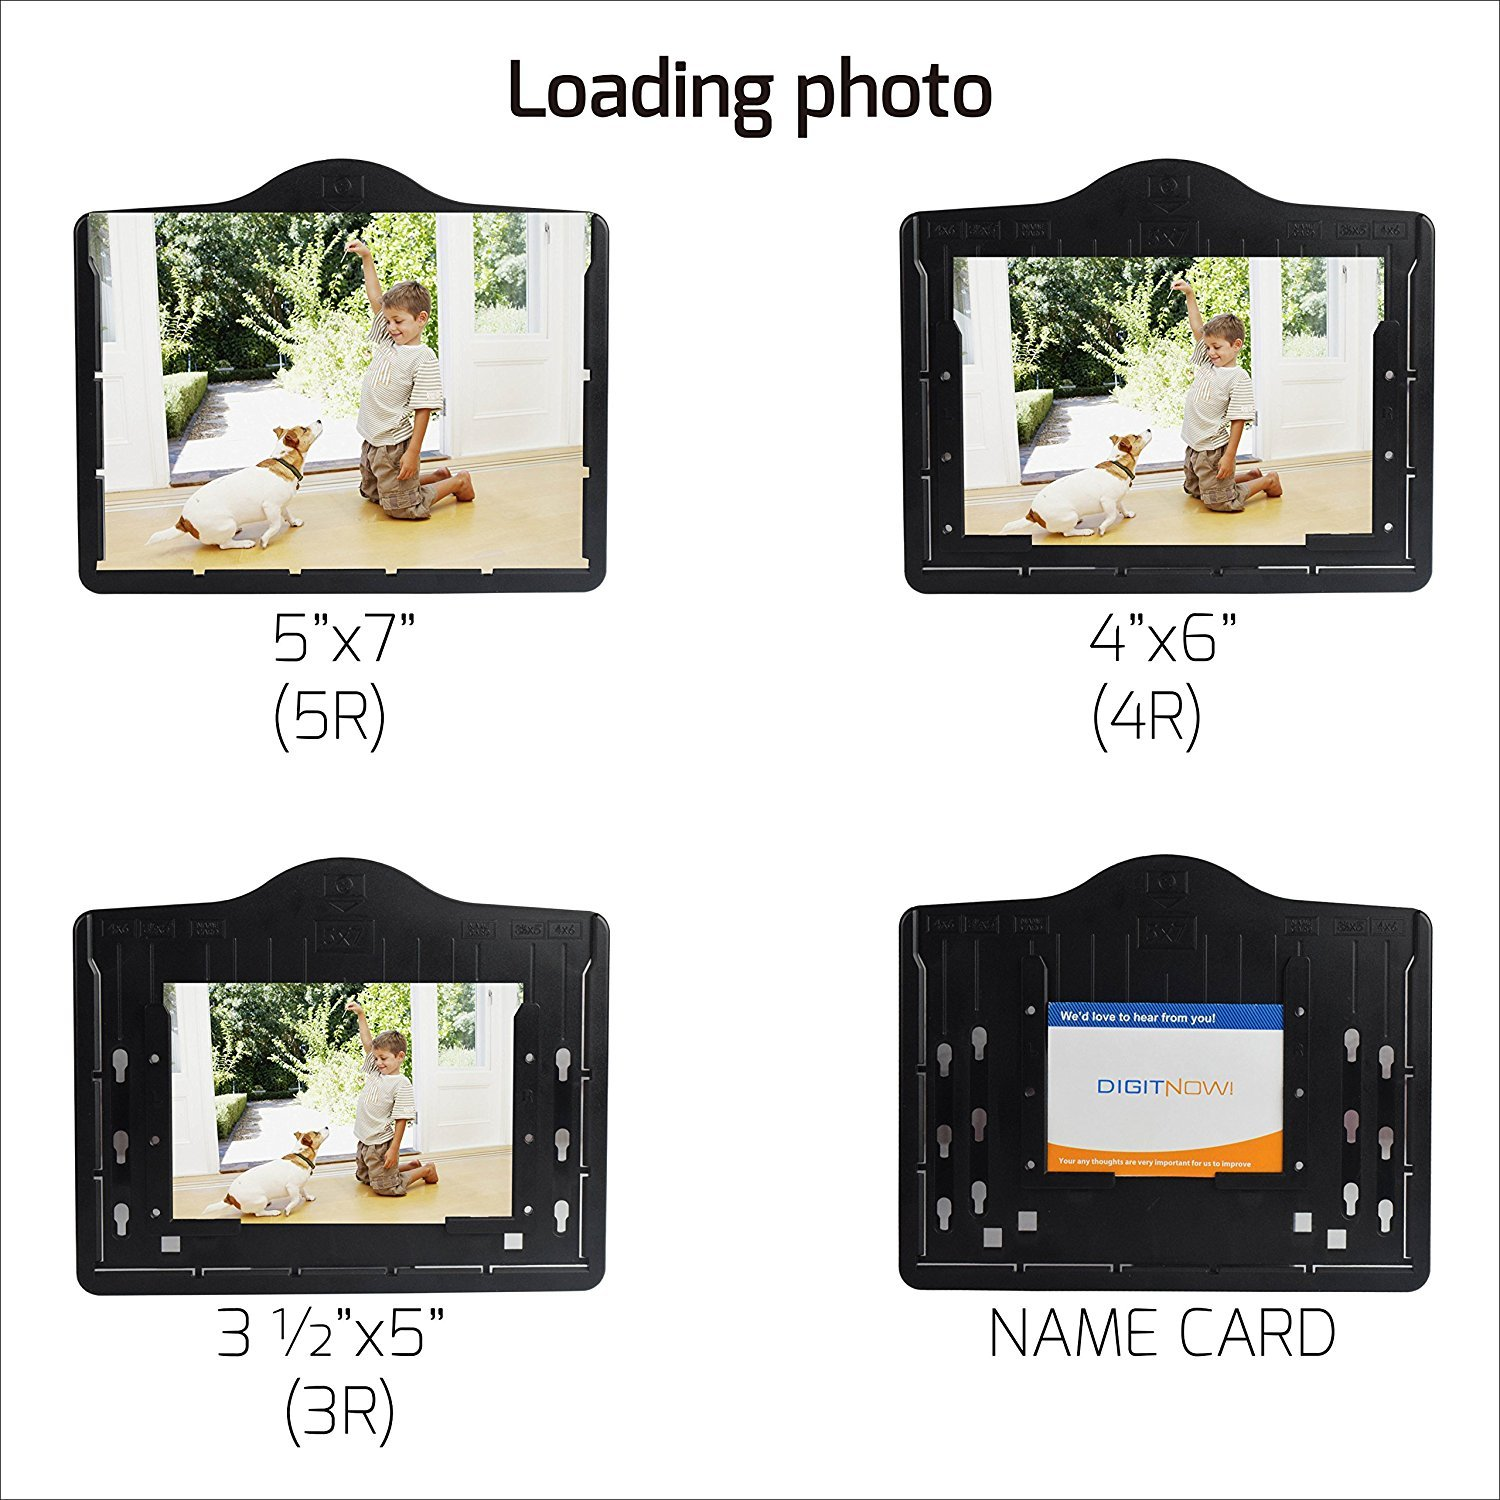 DIGITNOW 5M/10M 35mm Slides&Negatives Film Scanner Photo, Name Card, Slides and Negatives to Digital Converter for Saving Films to Digital Files in SD card(Included) with Photo Editing Software by DigitNow! (Image #3)